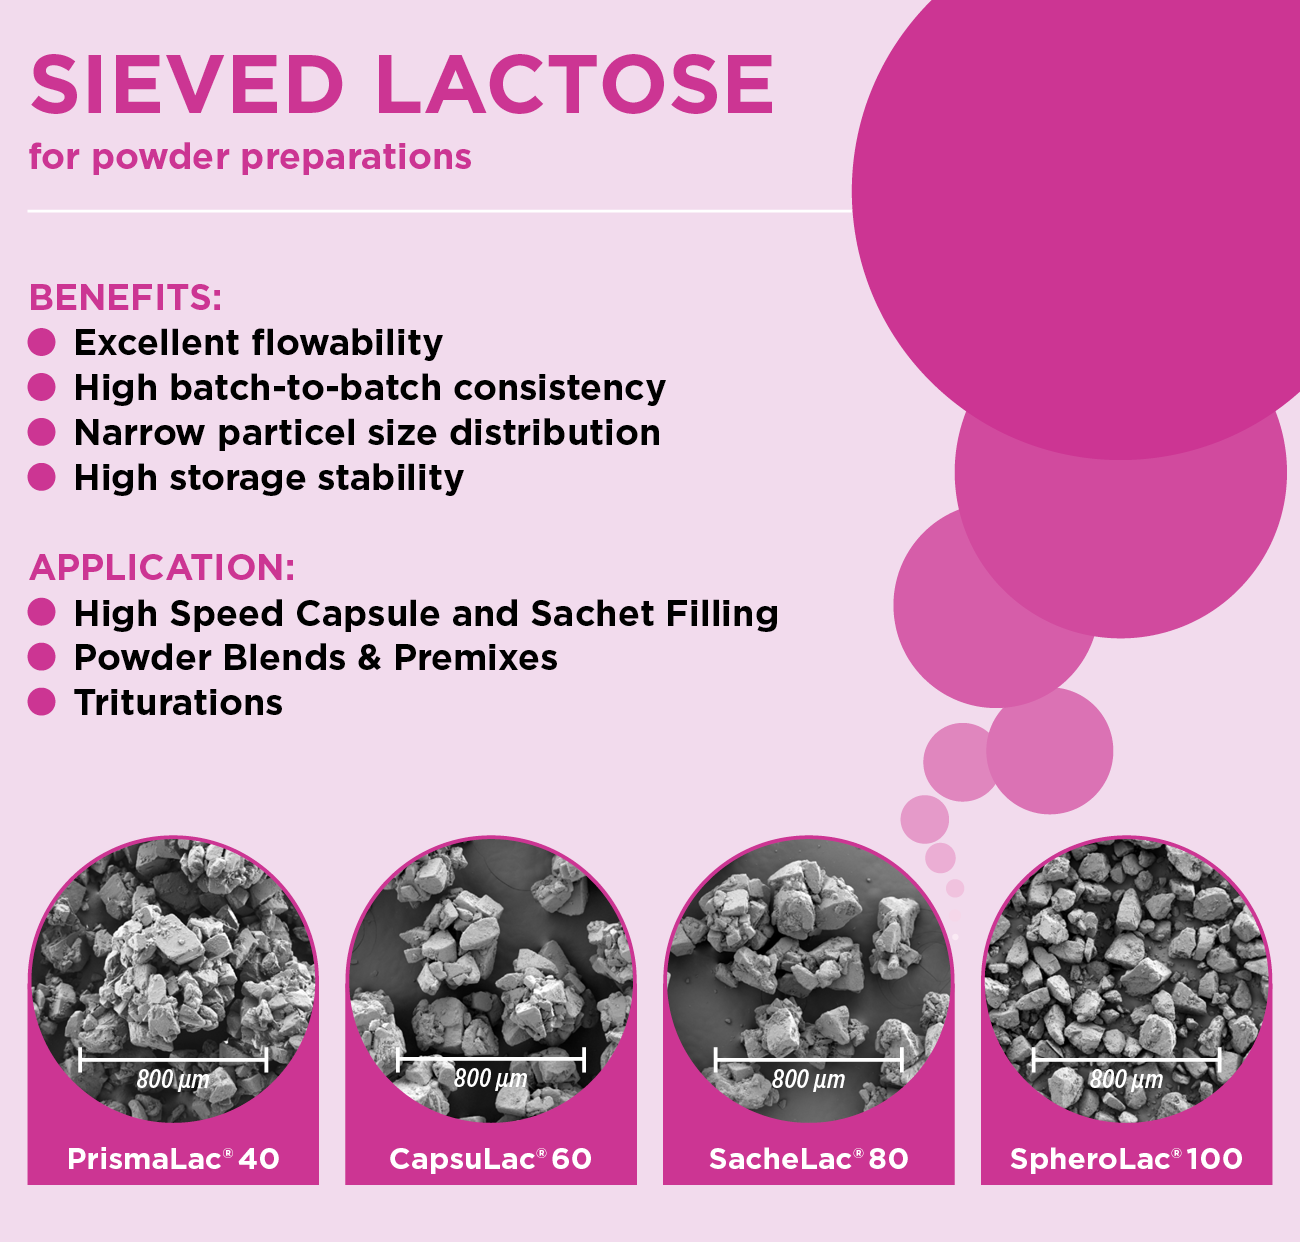 Sieved Lactose - Powder Preparations - Excipients from MEGGLE